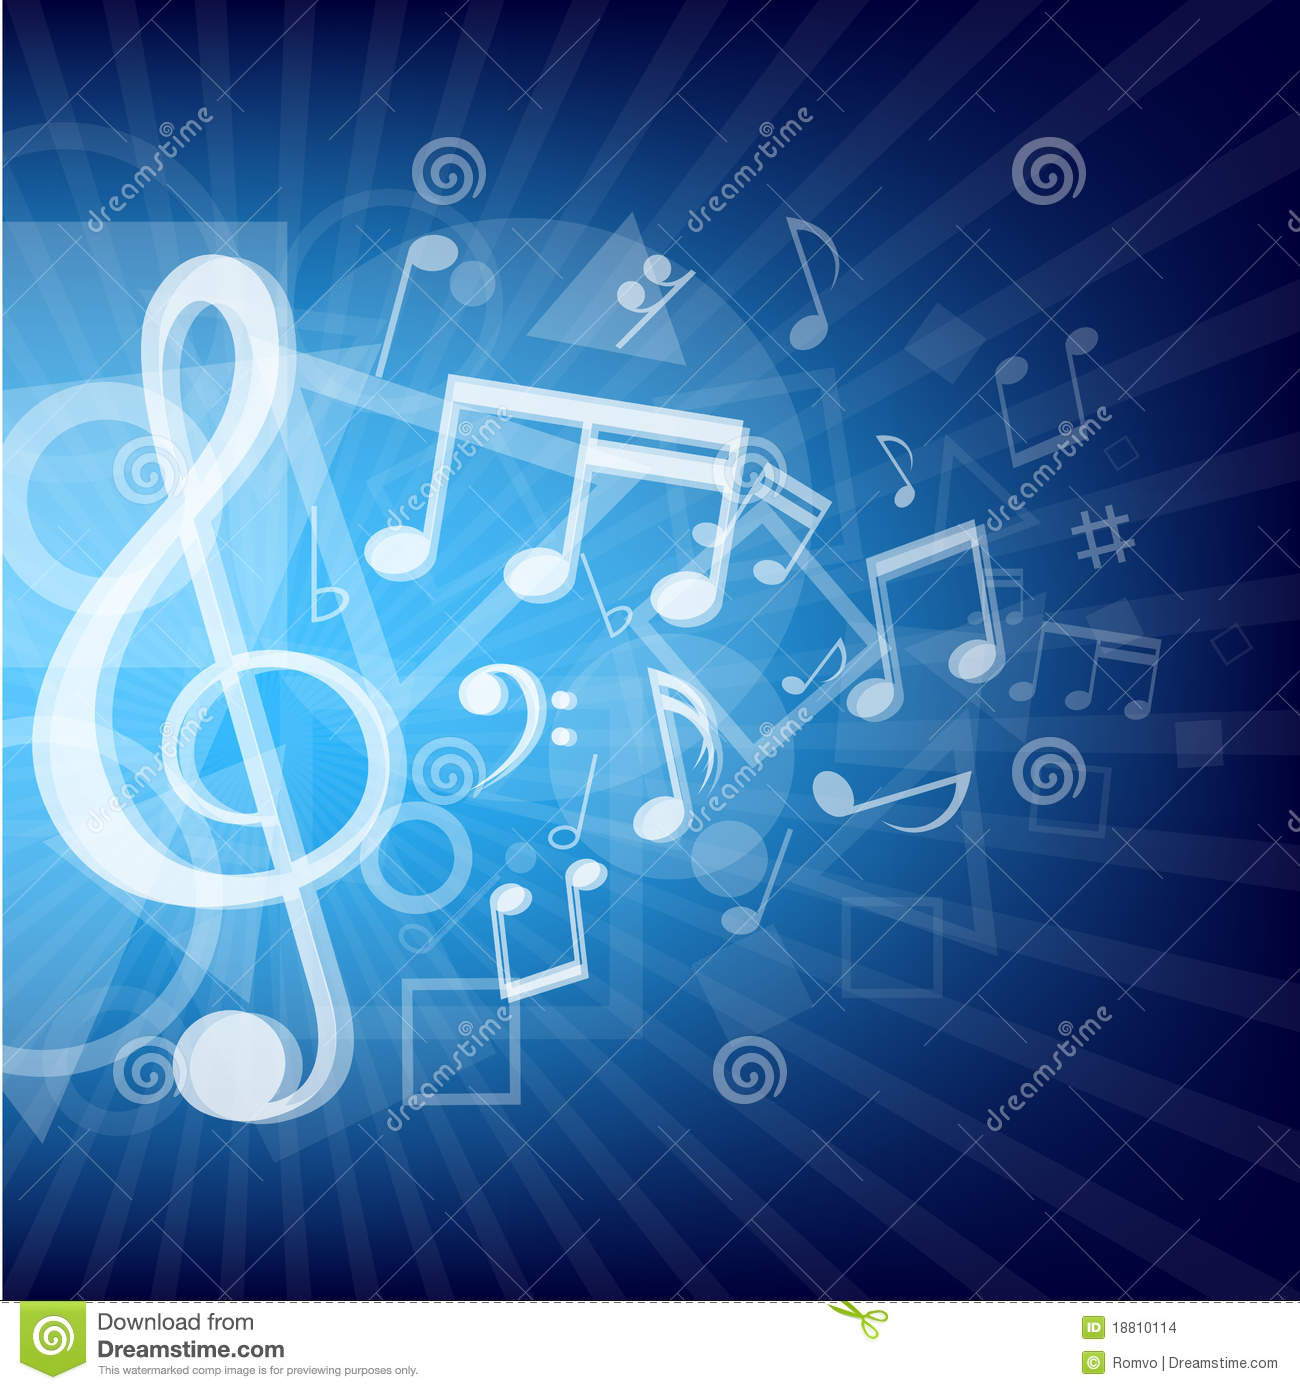 ... modern abstract music notes and geometrical shapes blue background